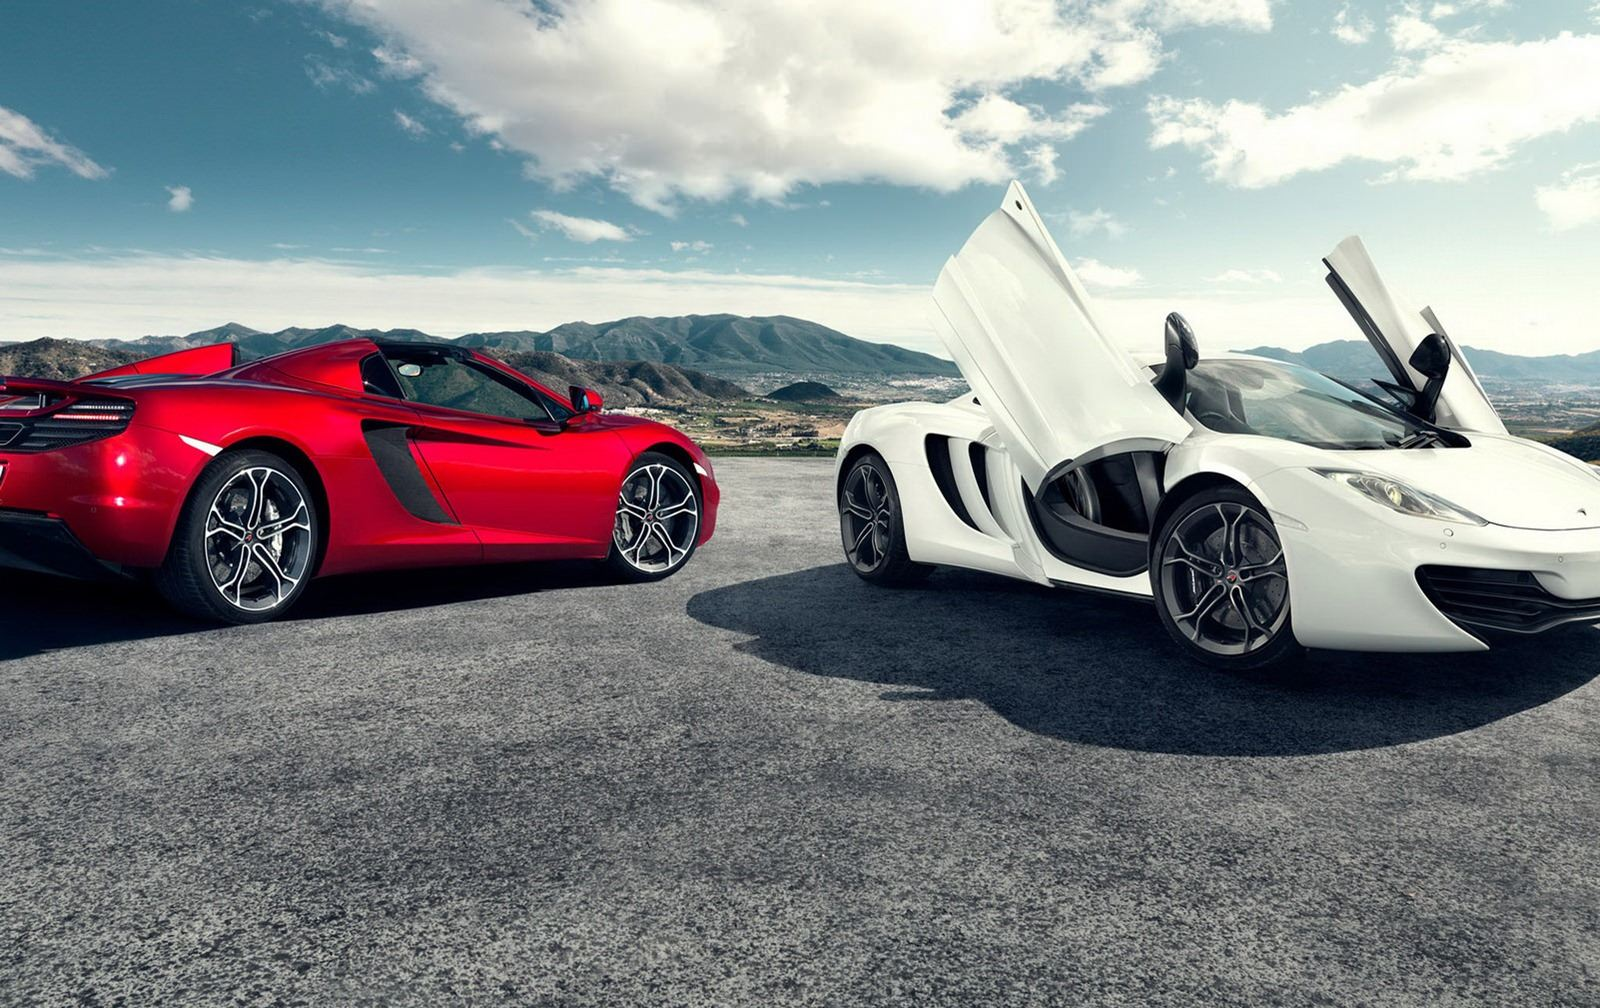 McLaren-MP4-12C-Spider-coupe-2